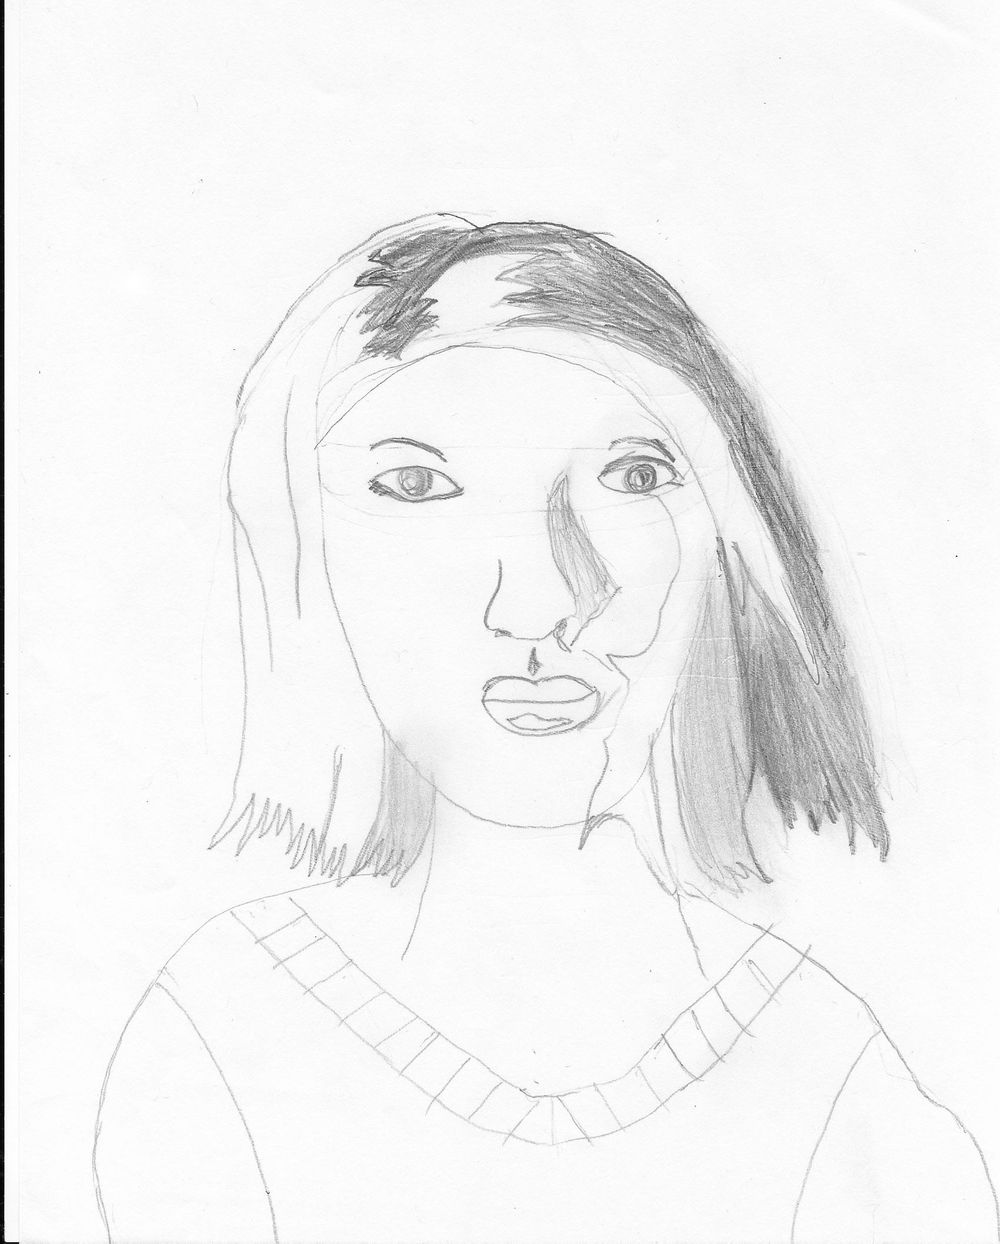 Animated Lady - image 1 - student project